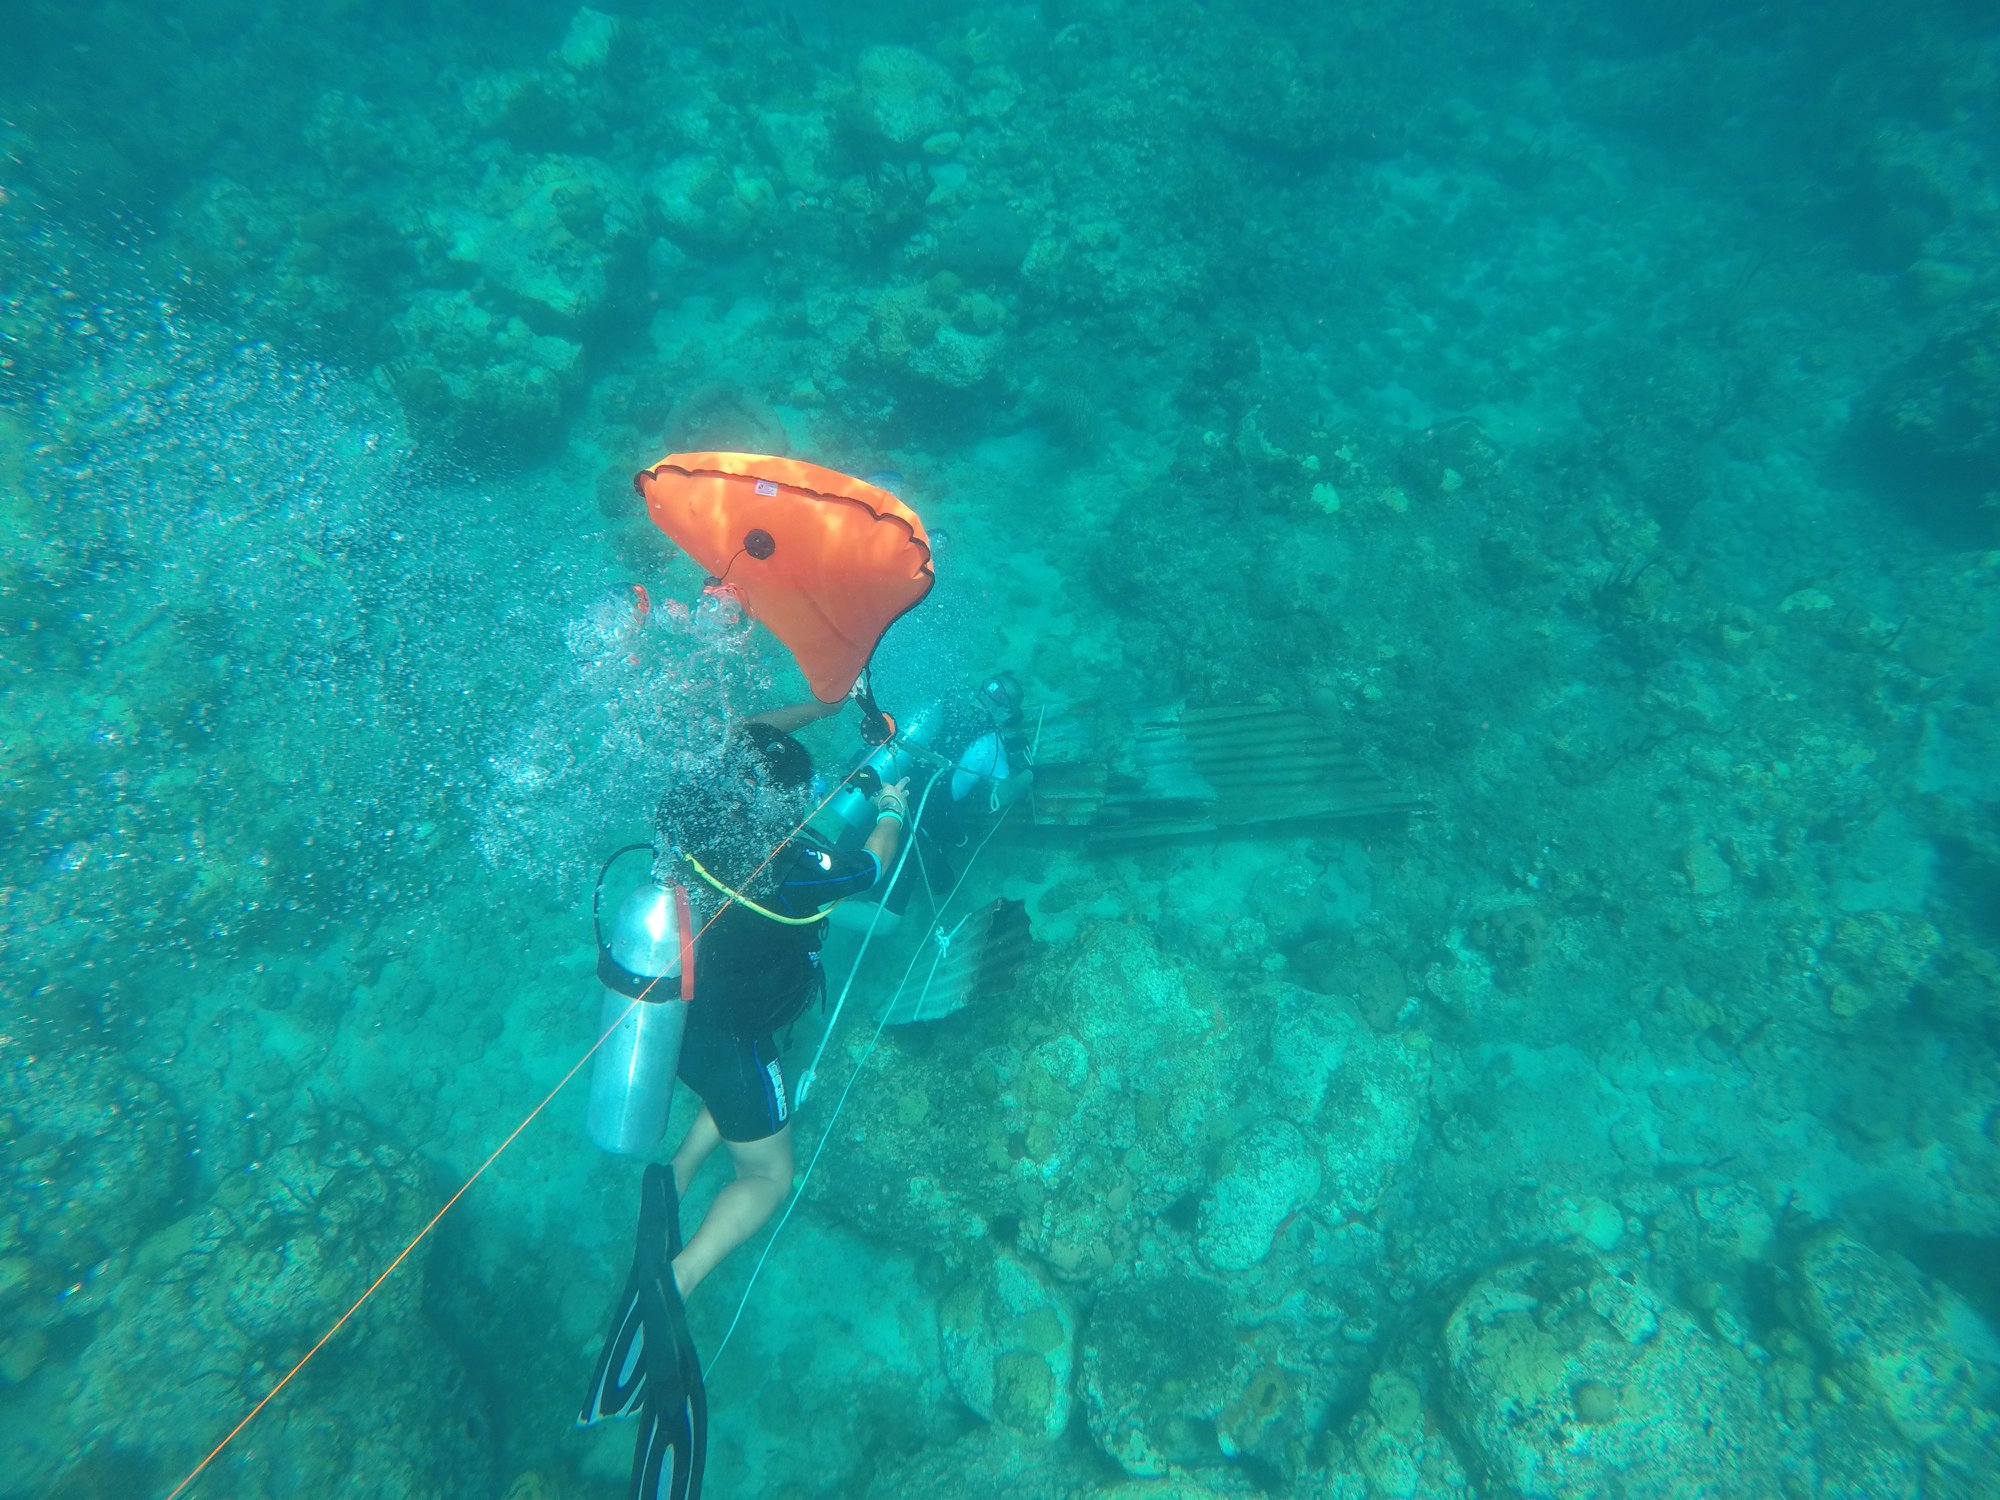 Our Divemaster Joy rigging a surface line to the lift bag line, and Diver Bill securing the pile of galvanized roofing below!